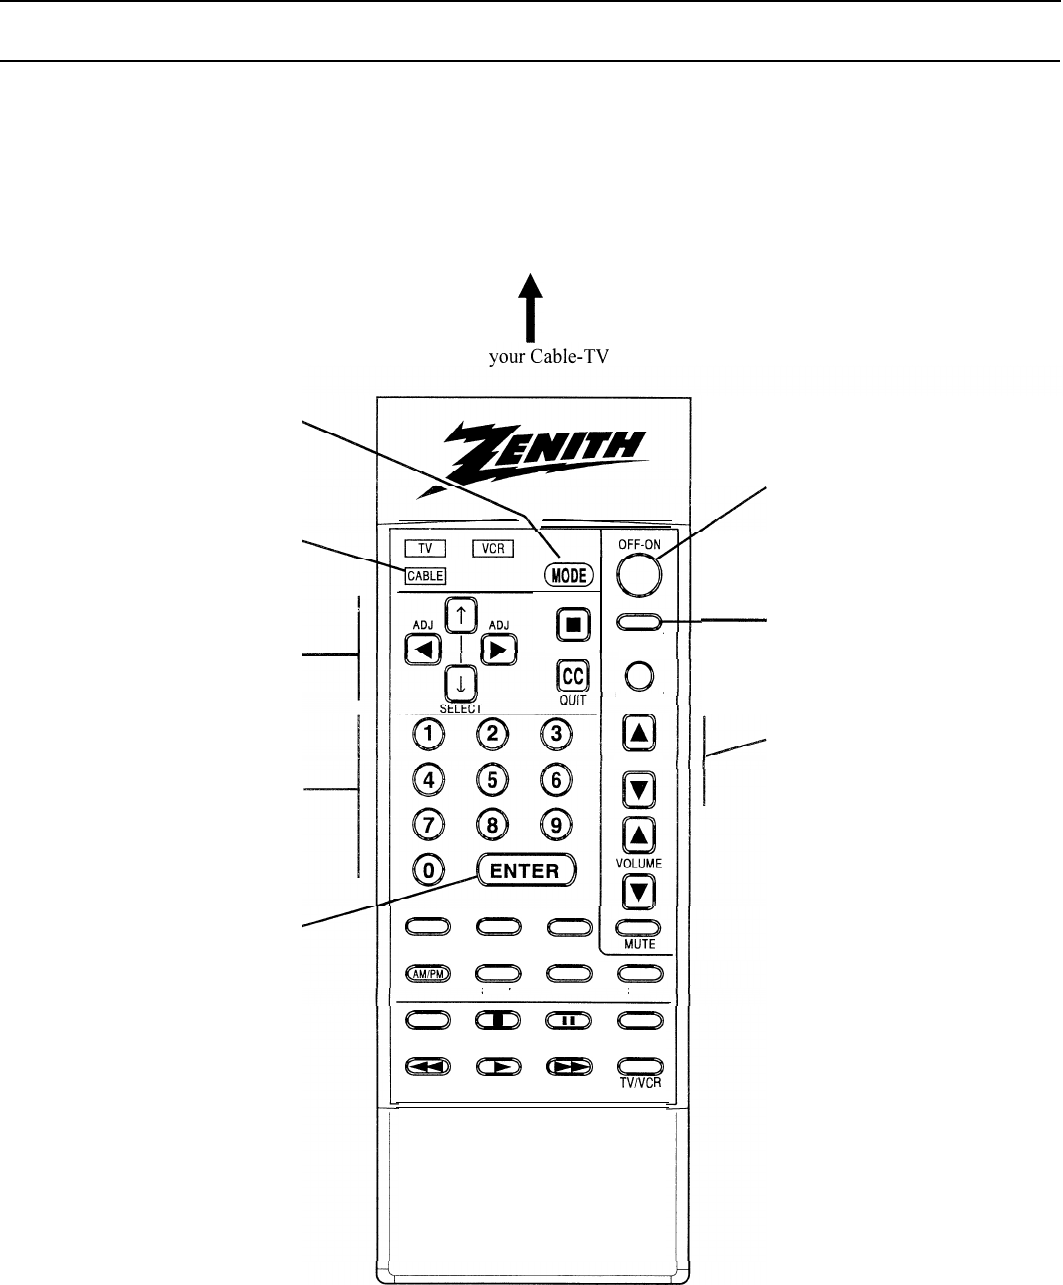 Zenith Universal Remote Cl015 Manual